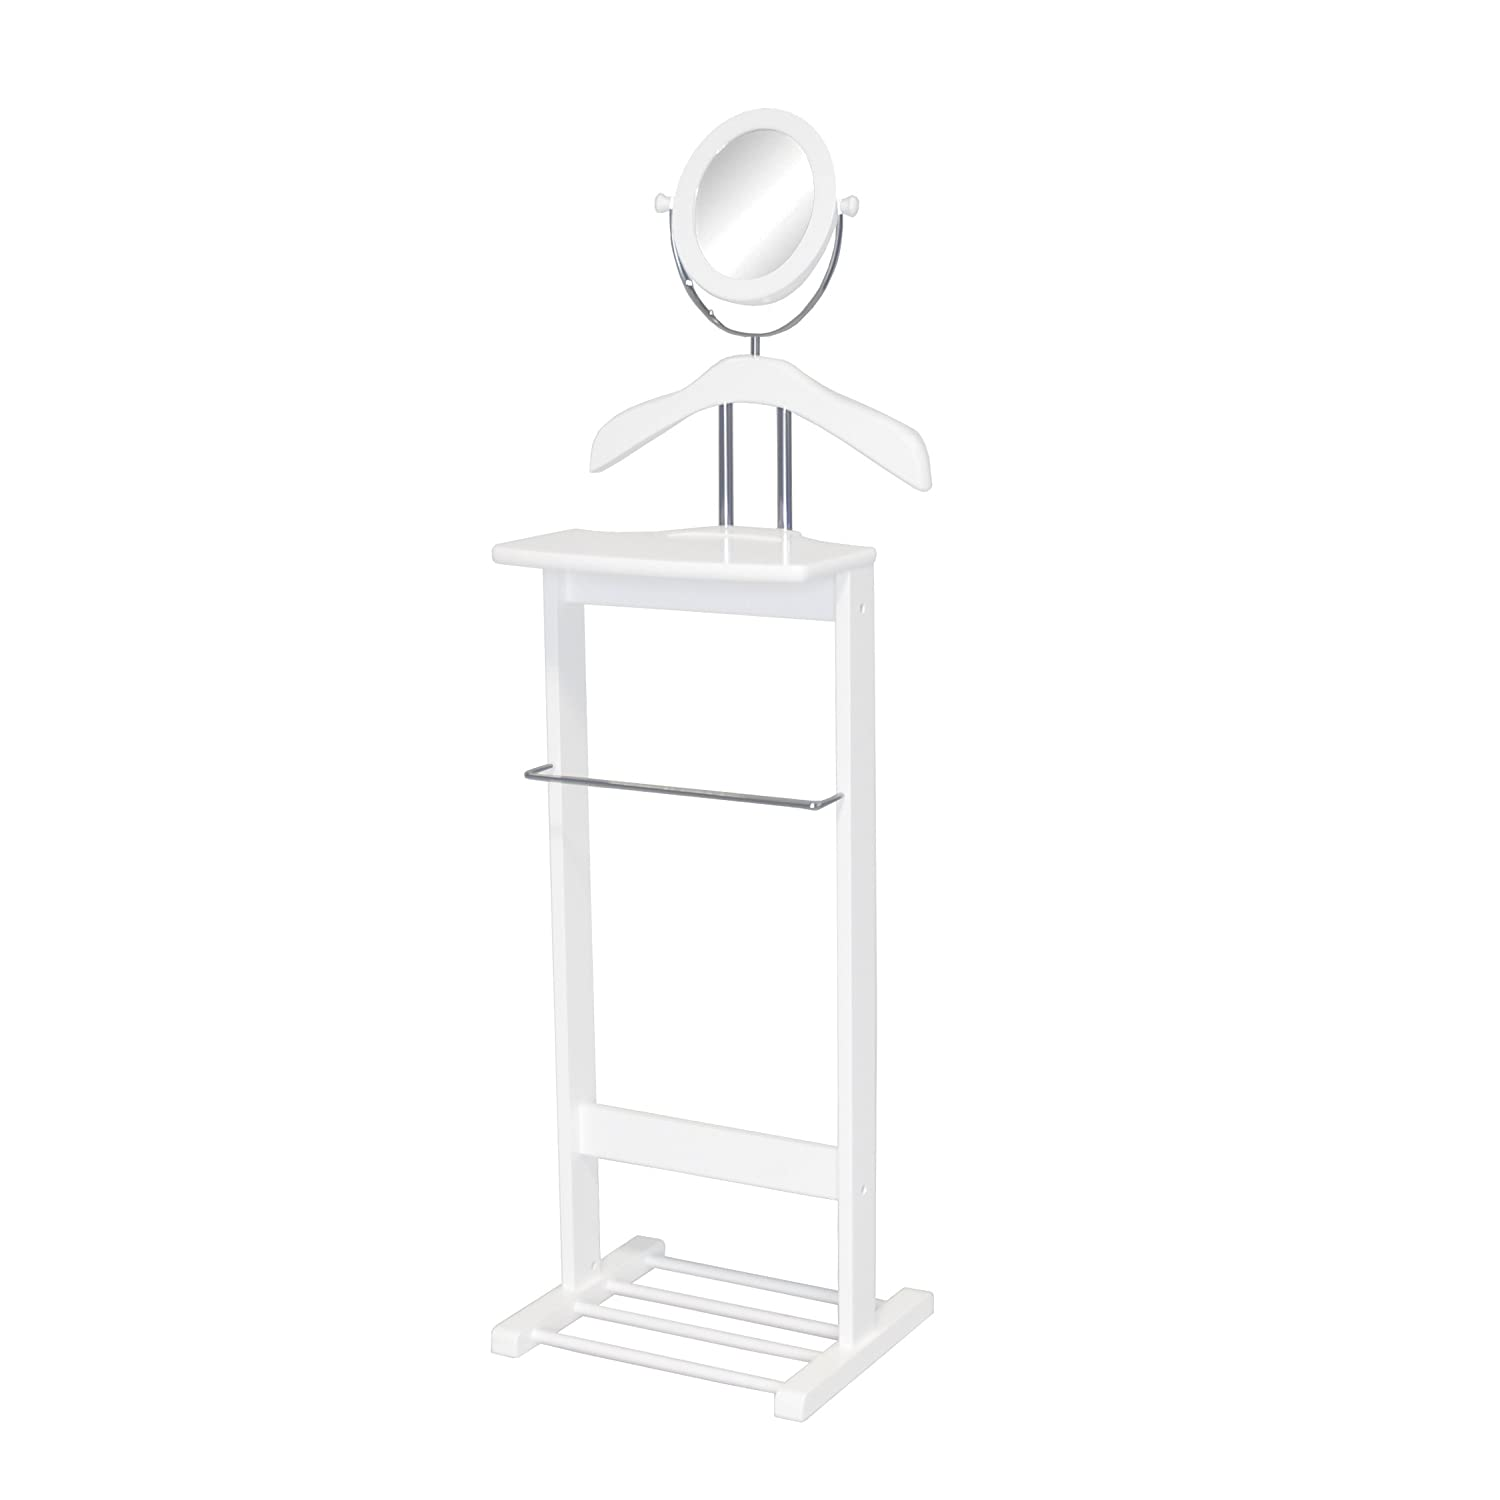 Proman Products Trojan 360 Degrees Vertical and Horizontal Swivel Mirror and Shoe Rack in White Valet VL17012